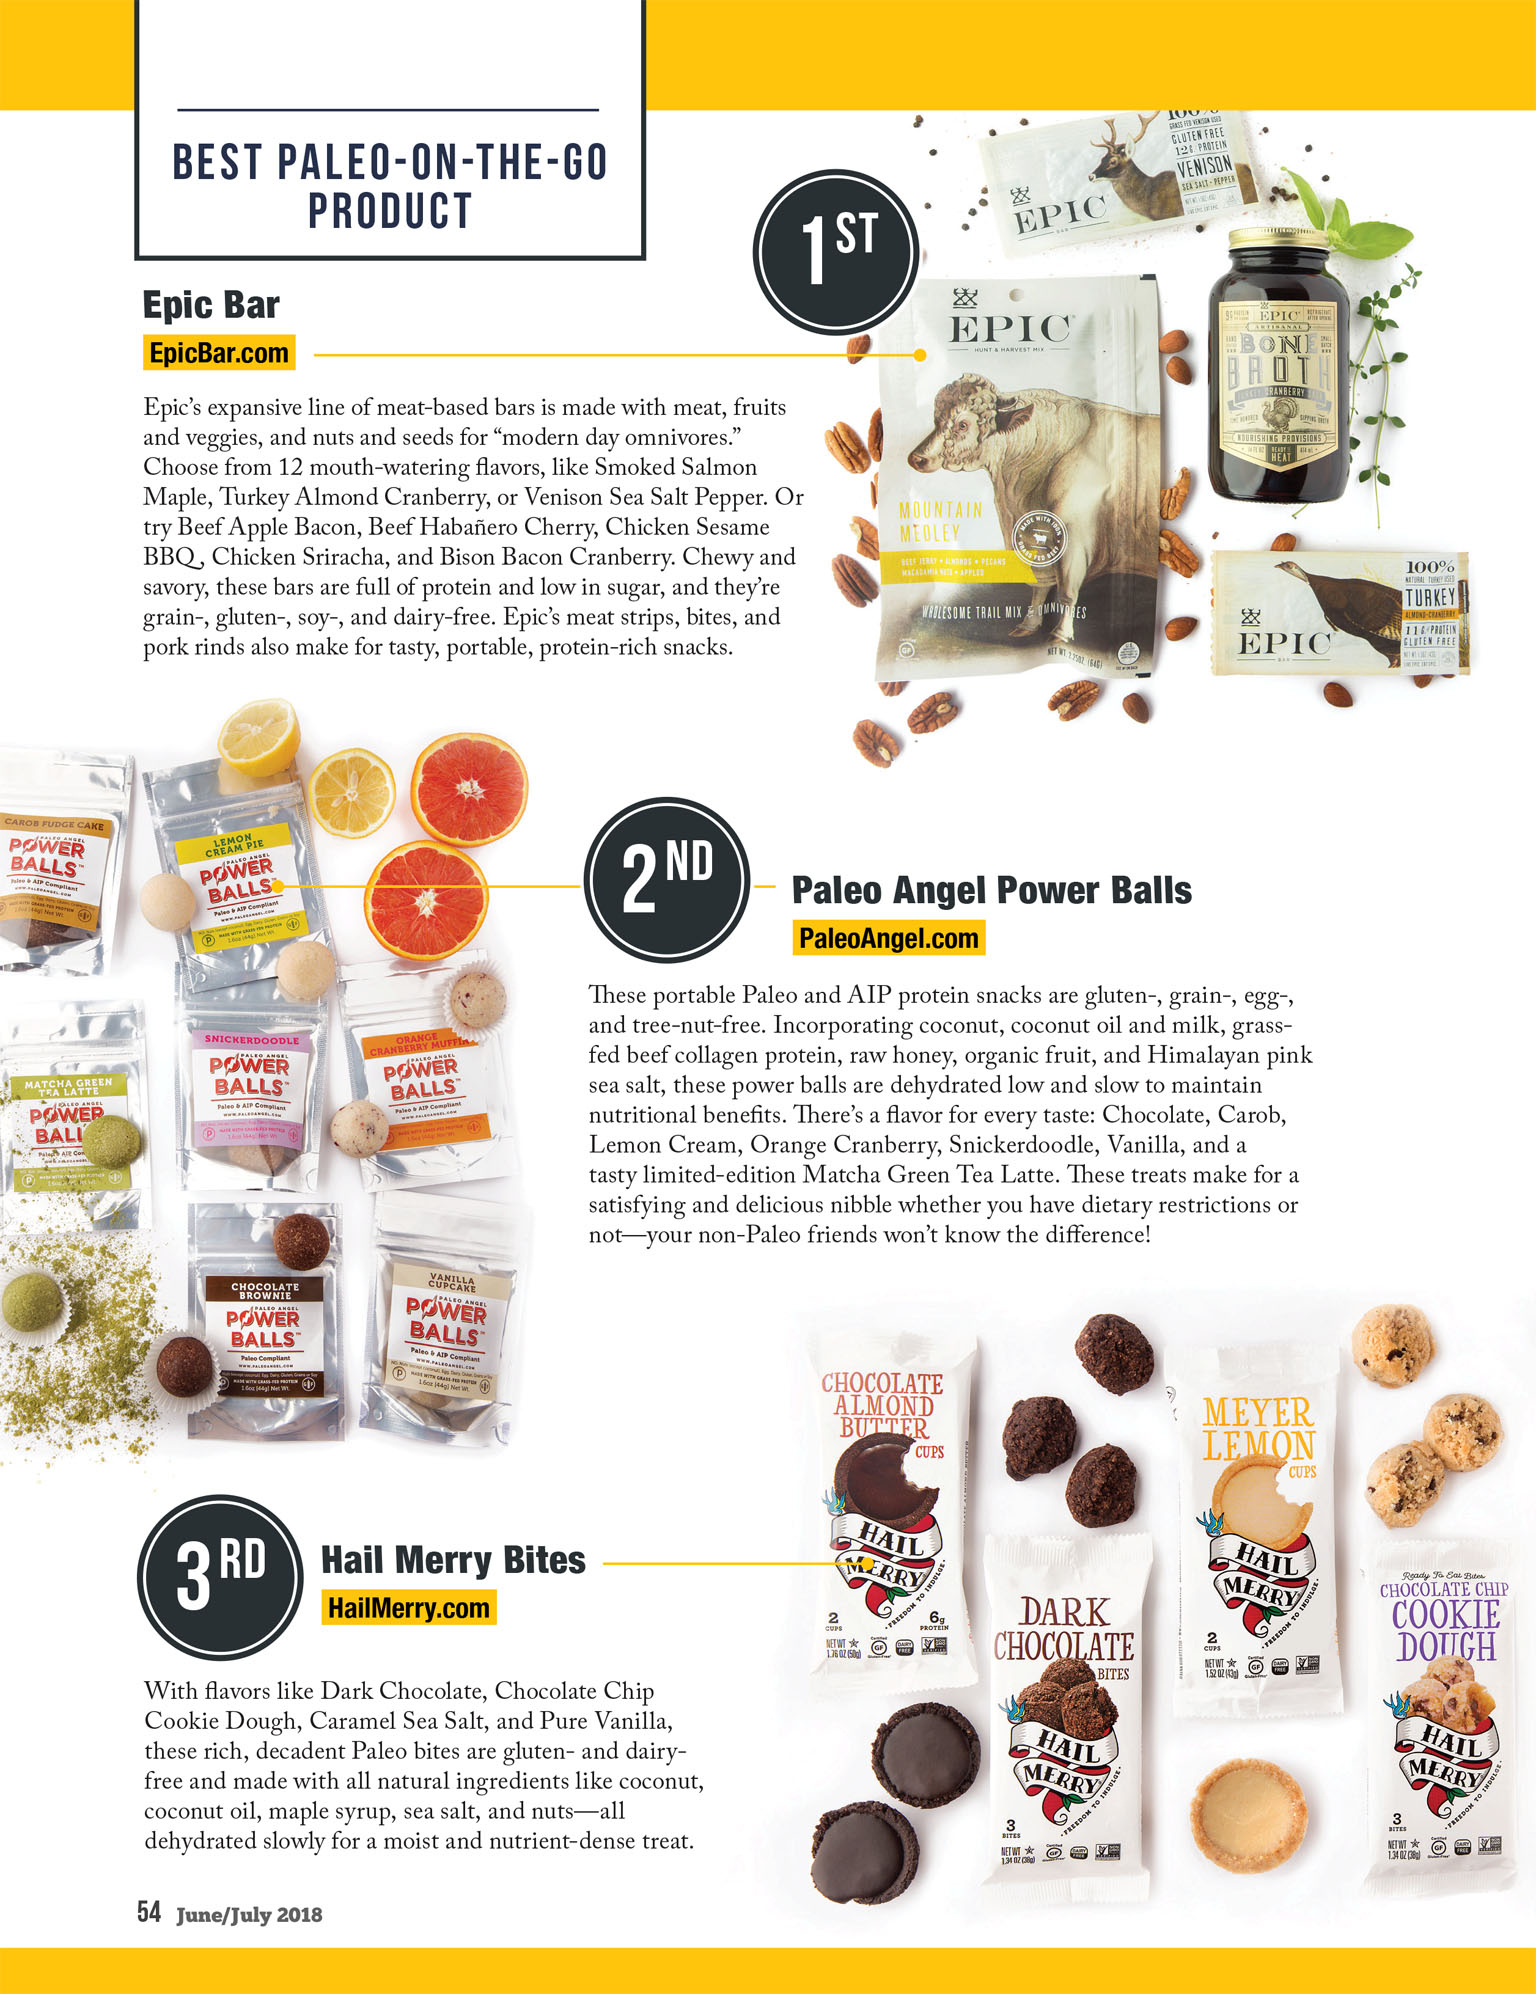 Paleo On the Go | Epic Bar, Paleo Angel Power Balls, Hail Merry | Paleo Magazine